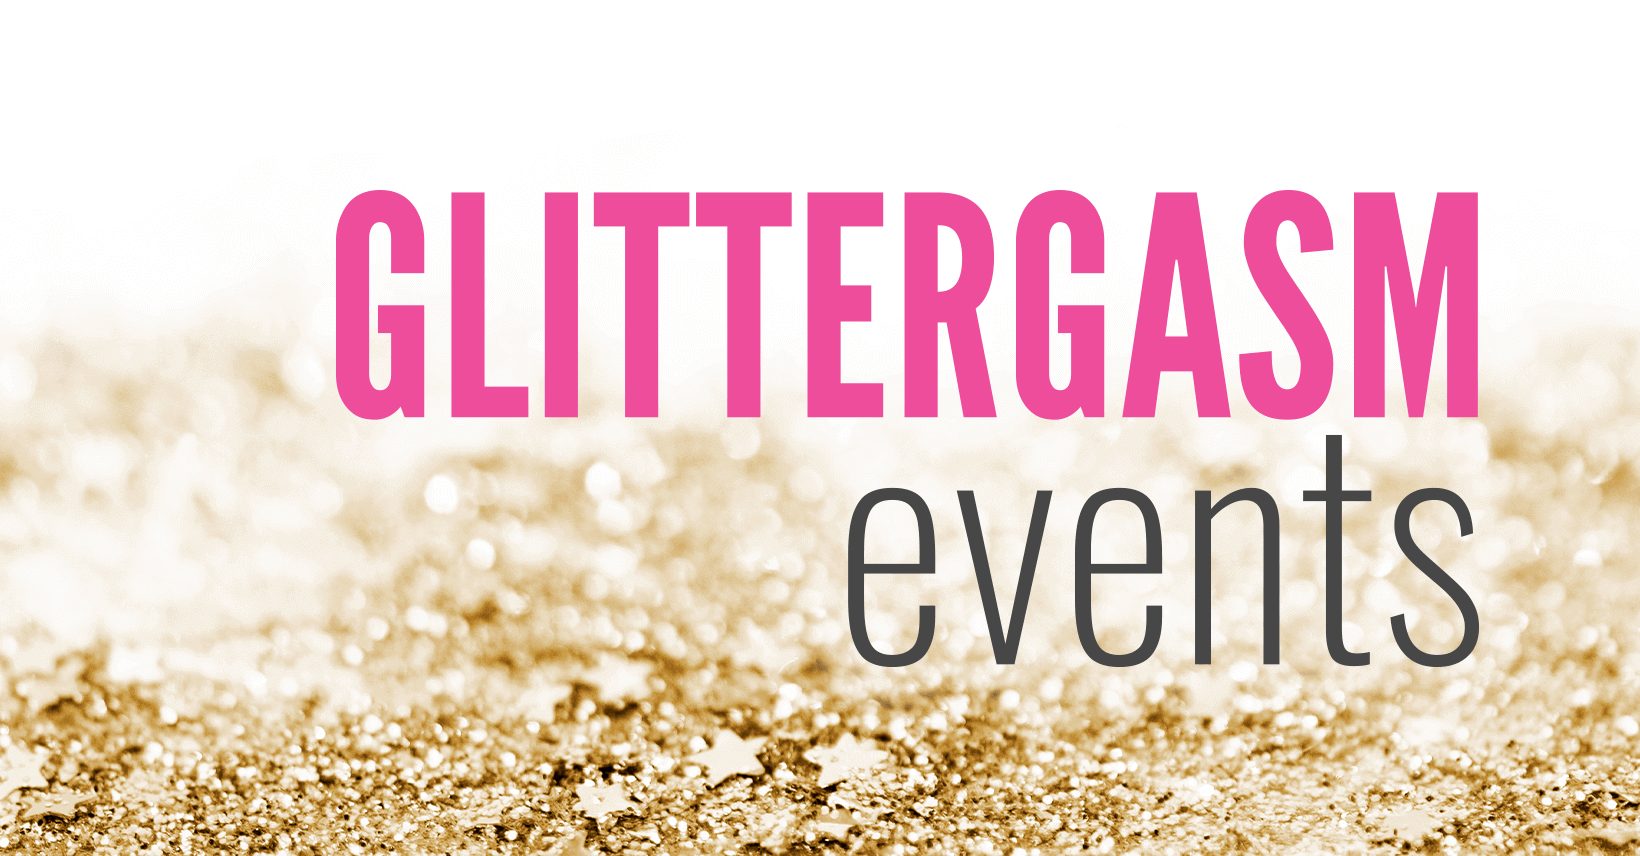 The words Glittergasm Events on a gold glitter background